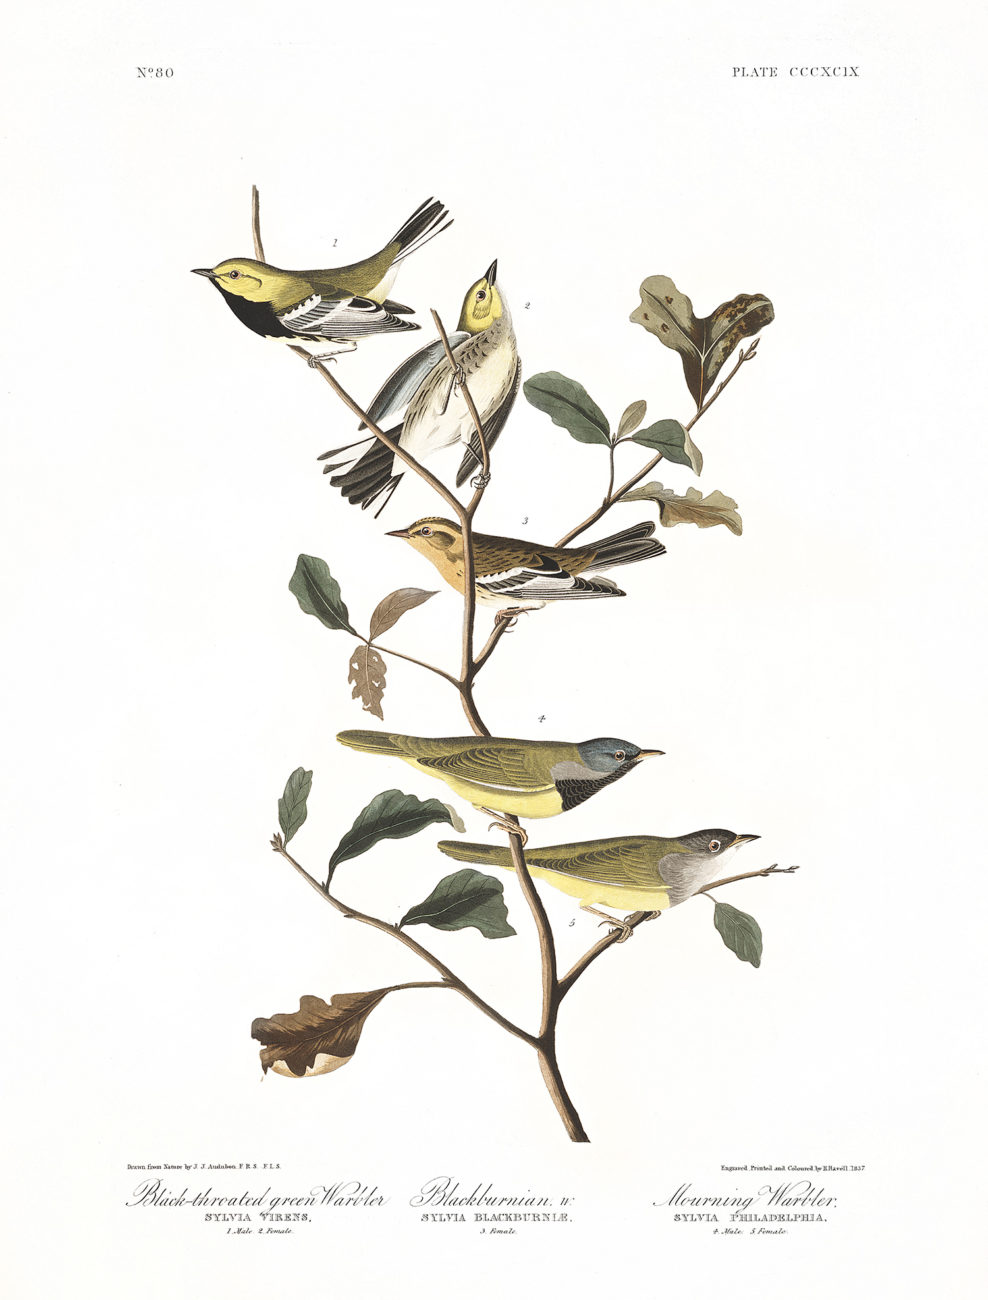 Plate 399 - Black Throated Green Warbler